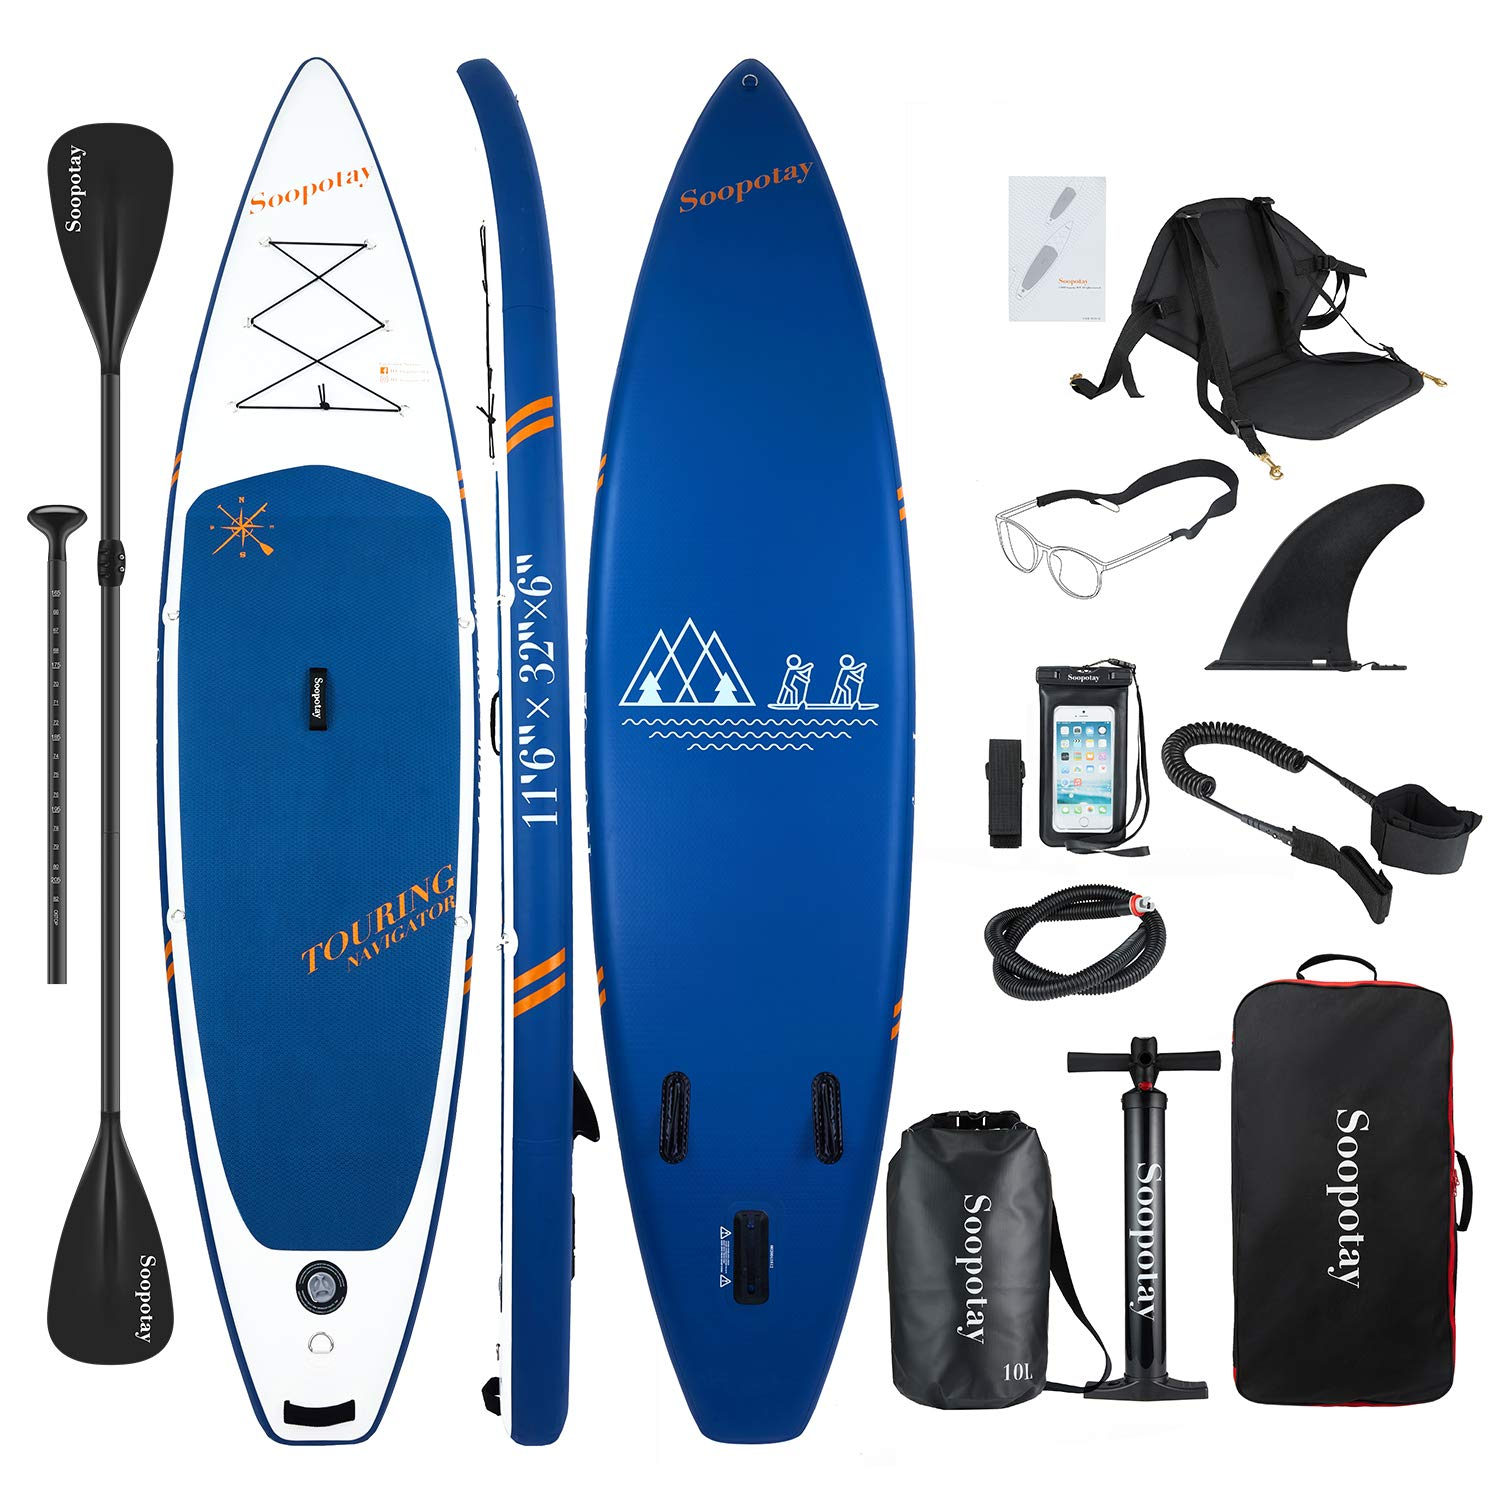 Inflatable SUP Board, Inflatable SUP Kayak, iSUP Package with All Accessories (Touring-Navy Blue-11'6'' x 32'' x 6'')